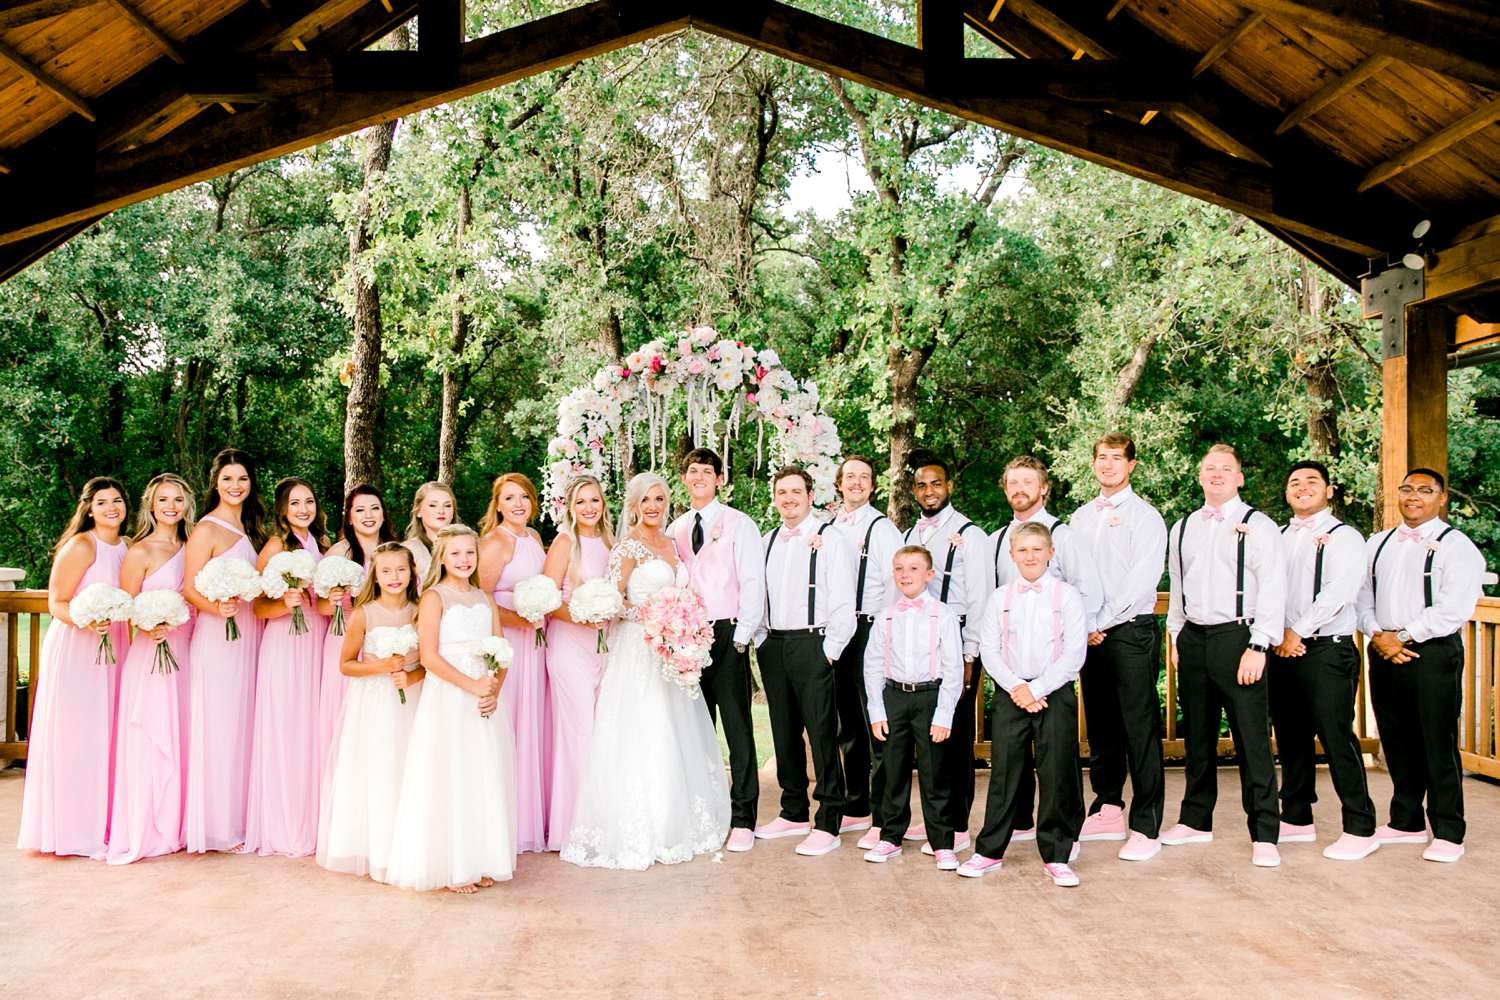 JESSICA+LYLE+NEEL+THE_SPRINGS_EVENTS_WEDDING_OKLAHOMA_ALLEEJ_PHOTOGRAPHER_0075.jpg